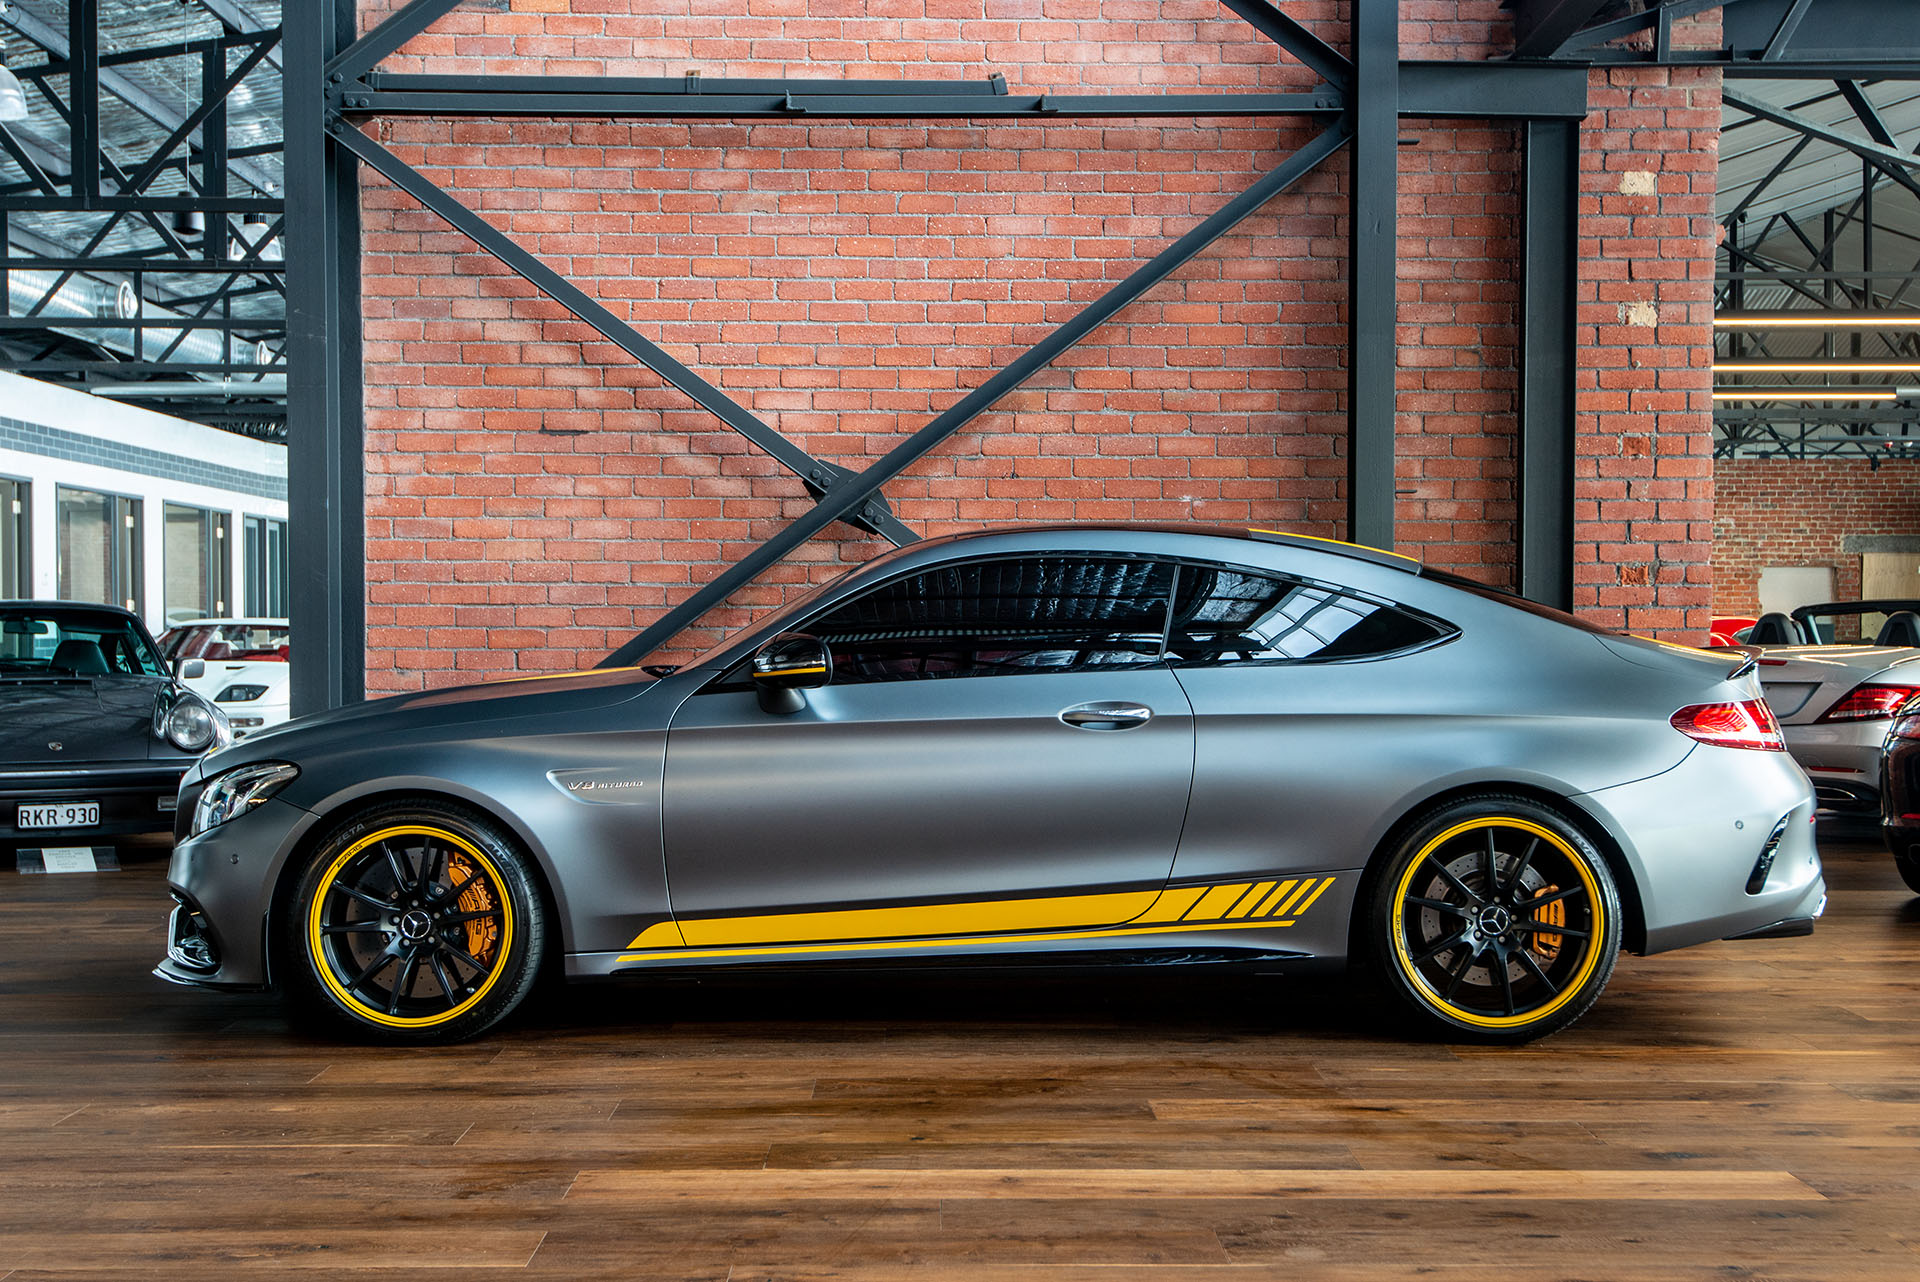 Performance Cars For Sale >> 2016 Mercedes Benz C63 S Coupe AMG - Richmonds - Classic ...